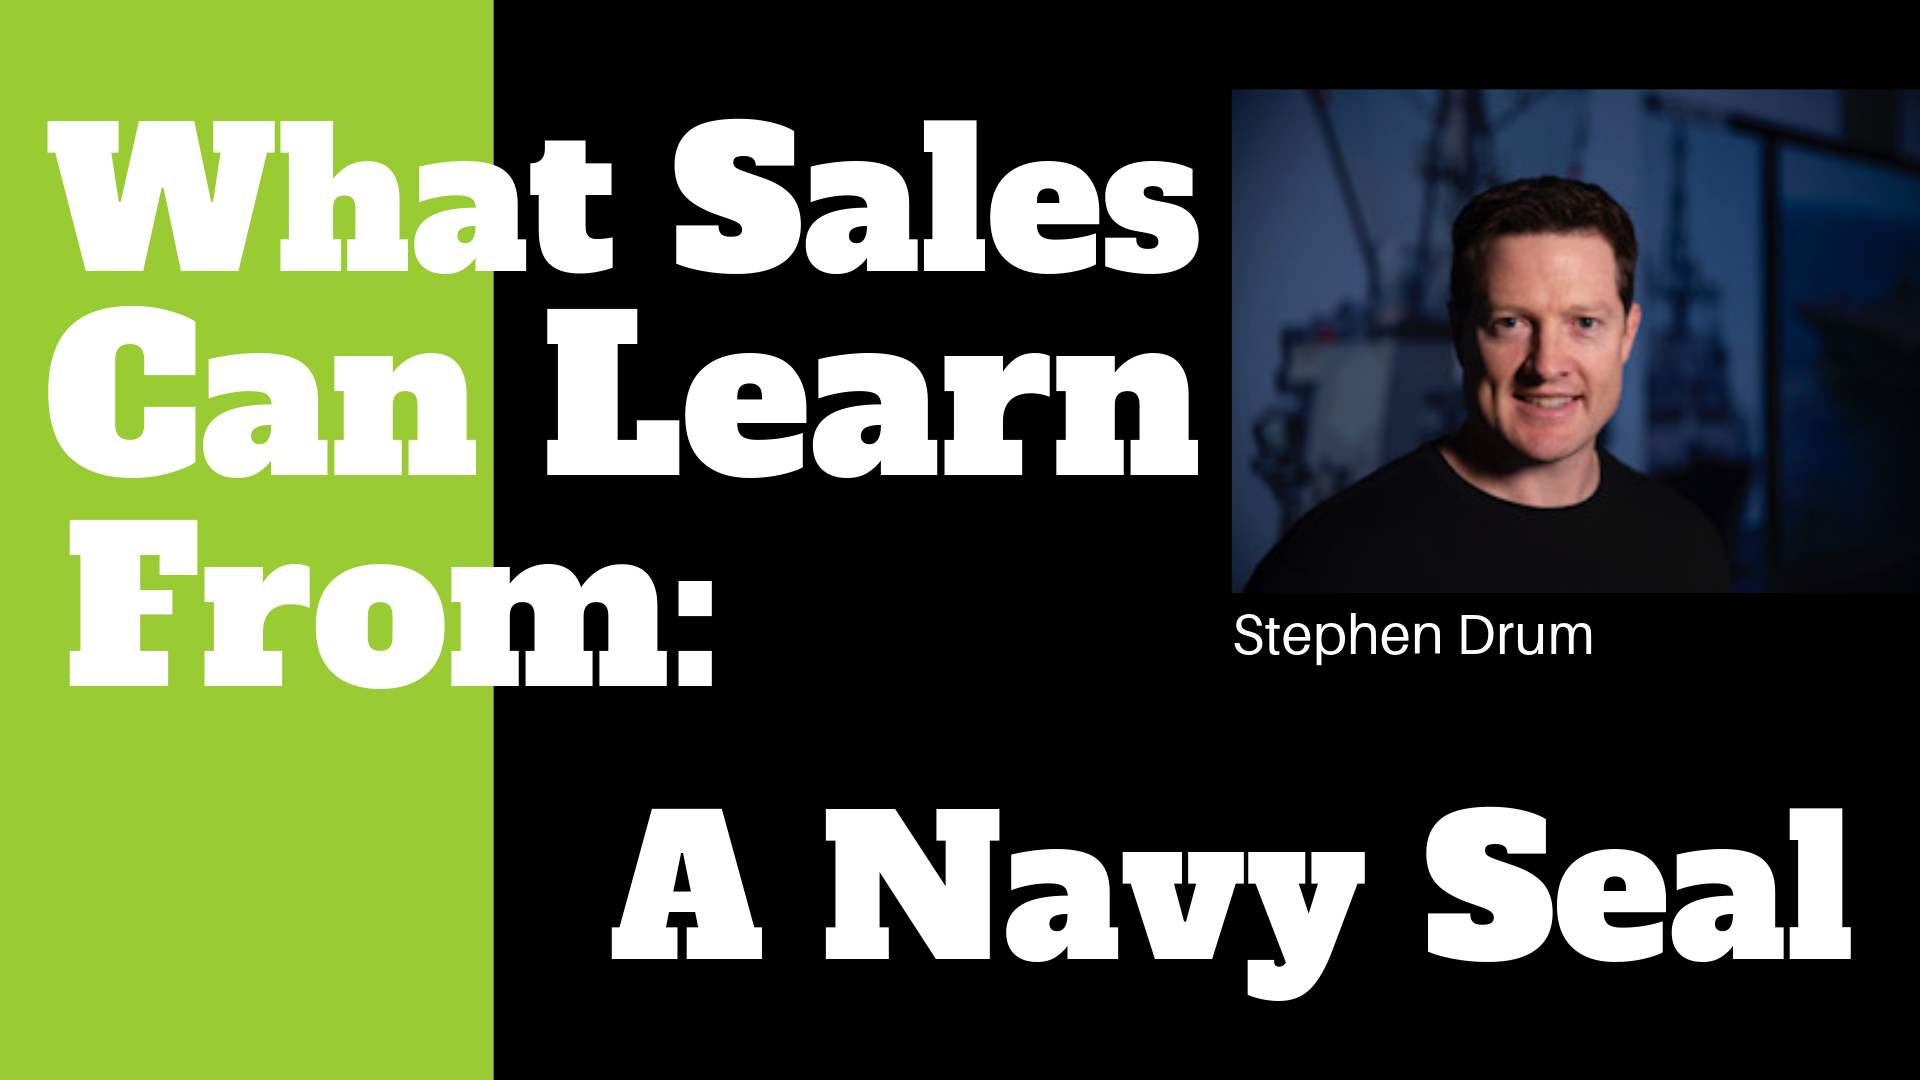 What Sales Can Learn From_ A Navy Seal